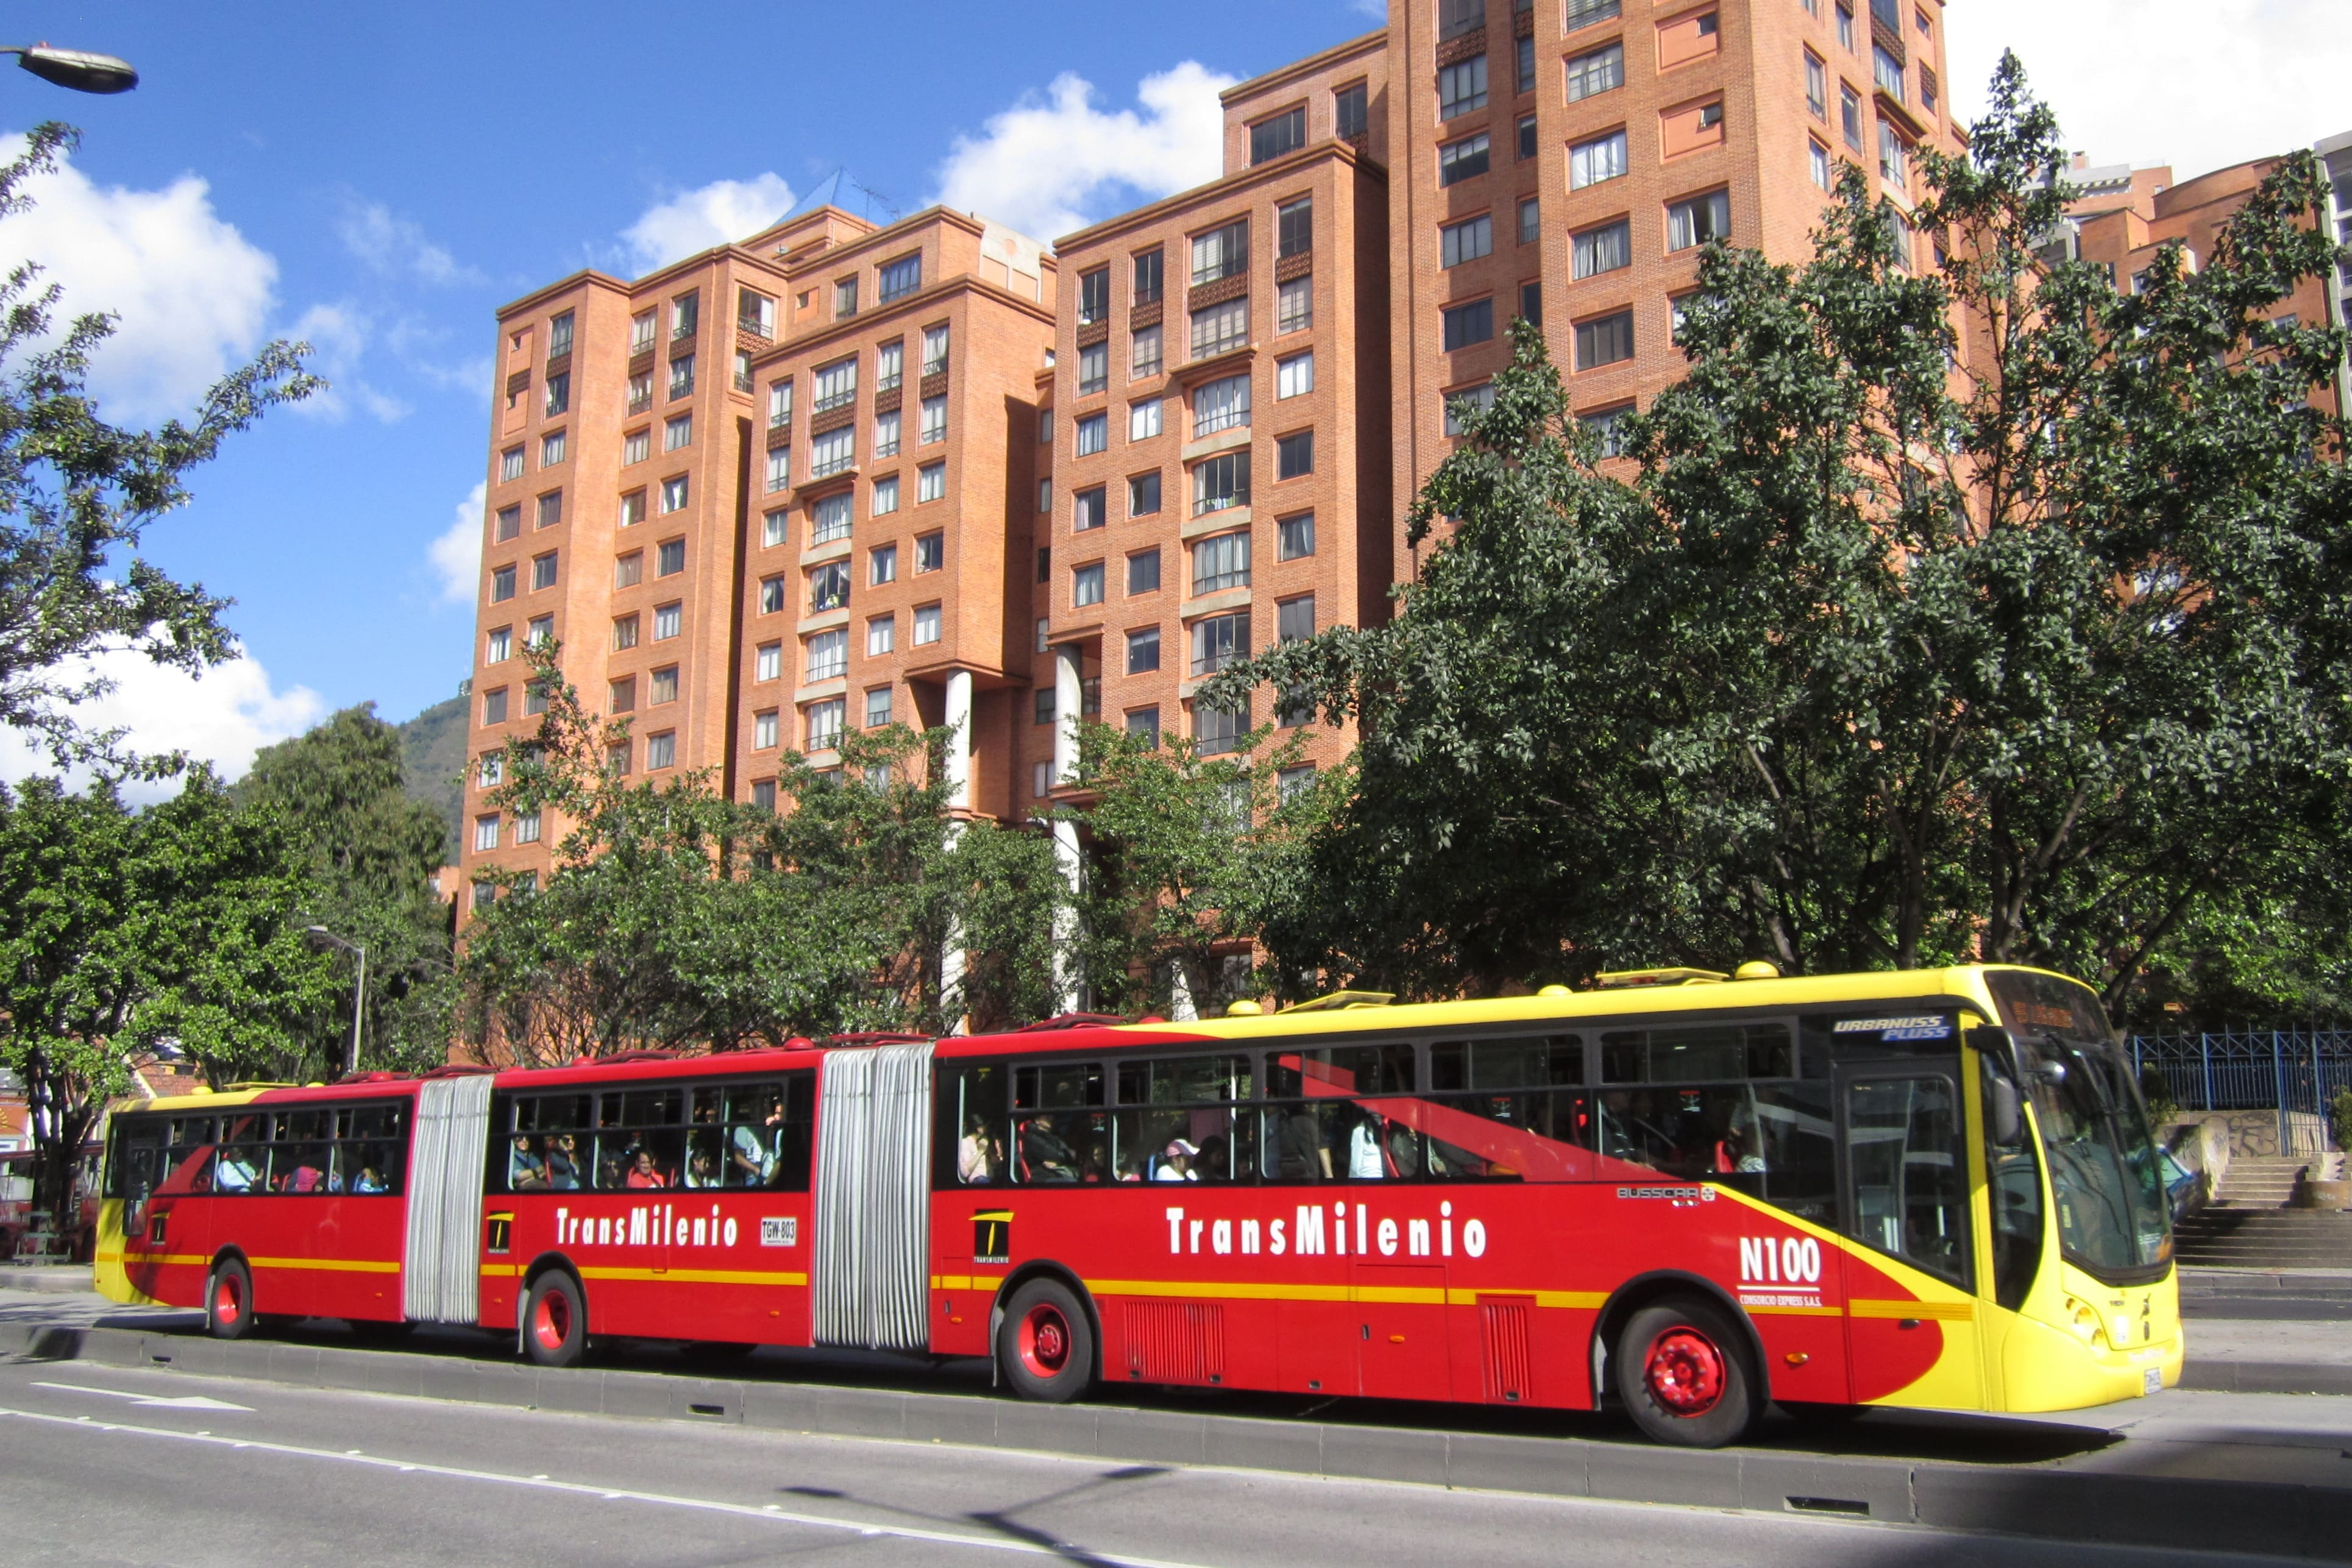 Getting familiar with transportation is important for Colombia tourism